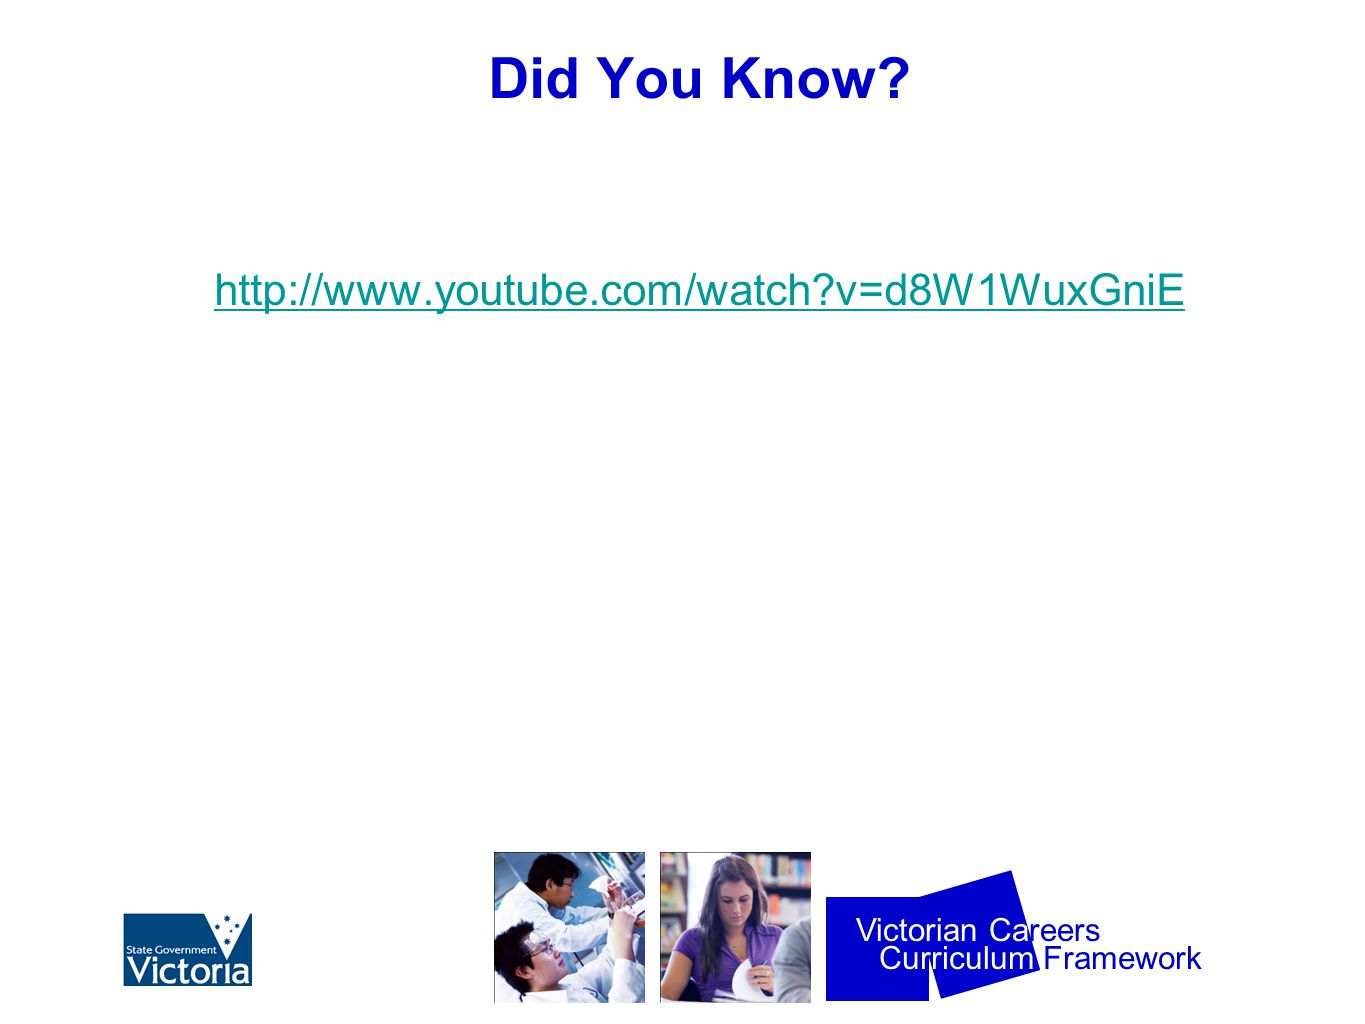 Curriculum Framework Victorian Careers Did You Know http://www.youtube.com/watch v=d8W1WuxGniE